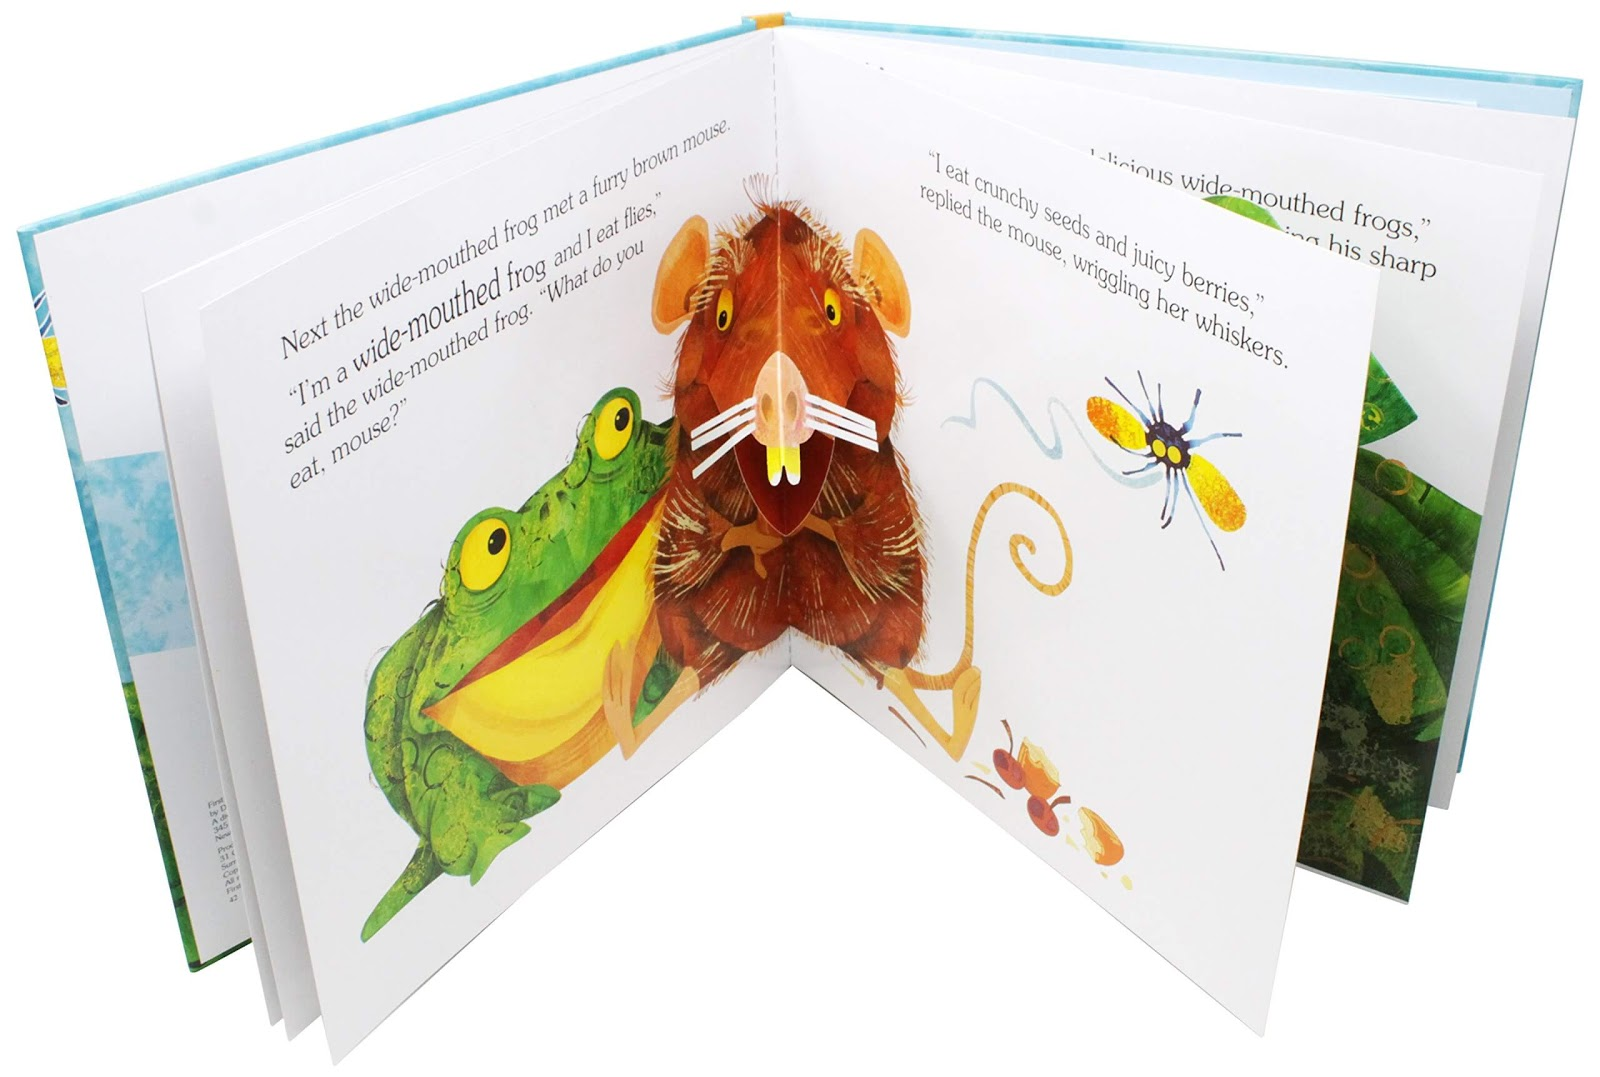 The Wide-Mouthed Frog pop up book